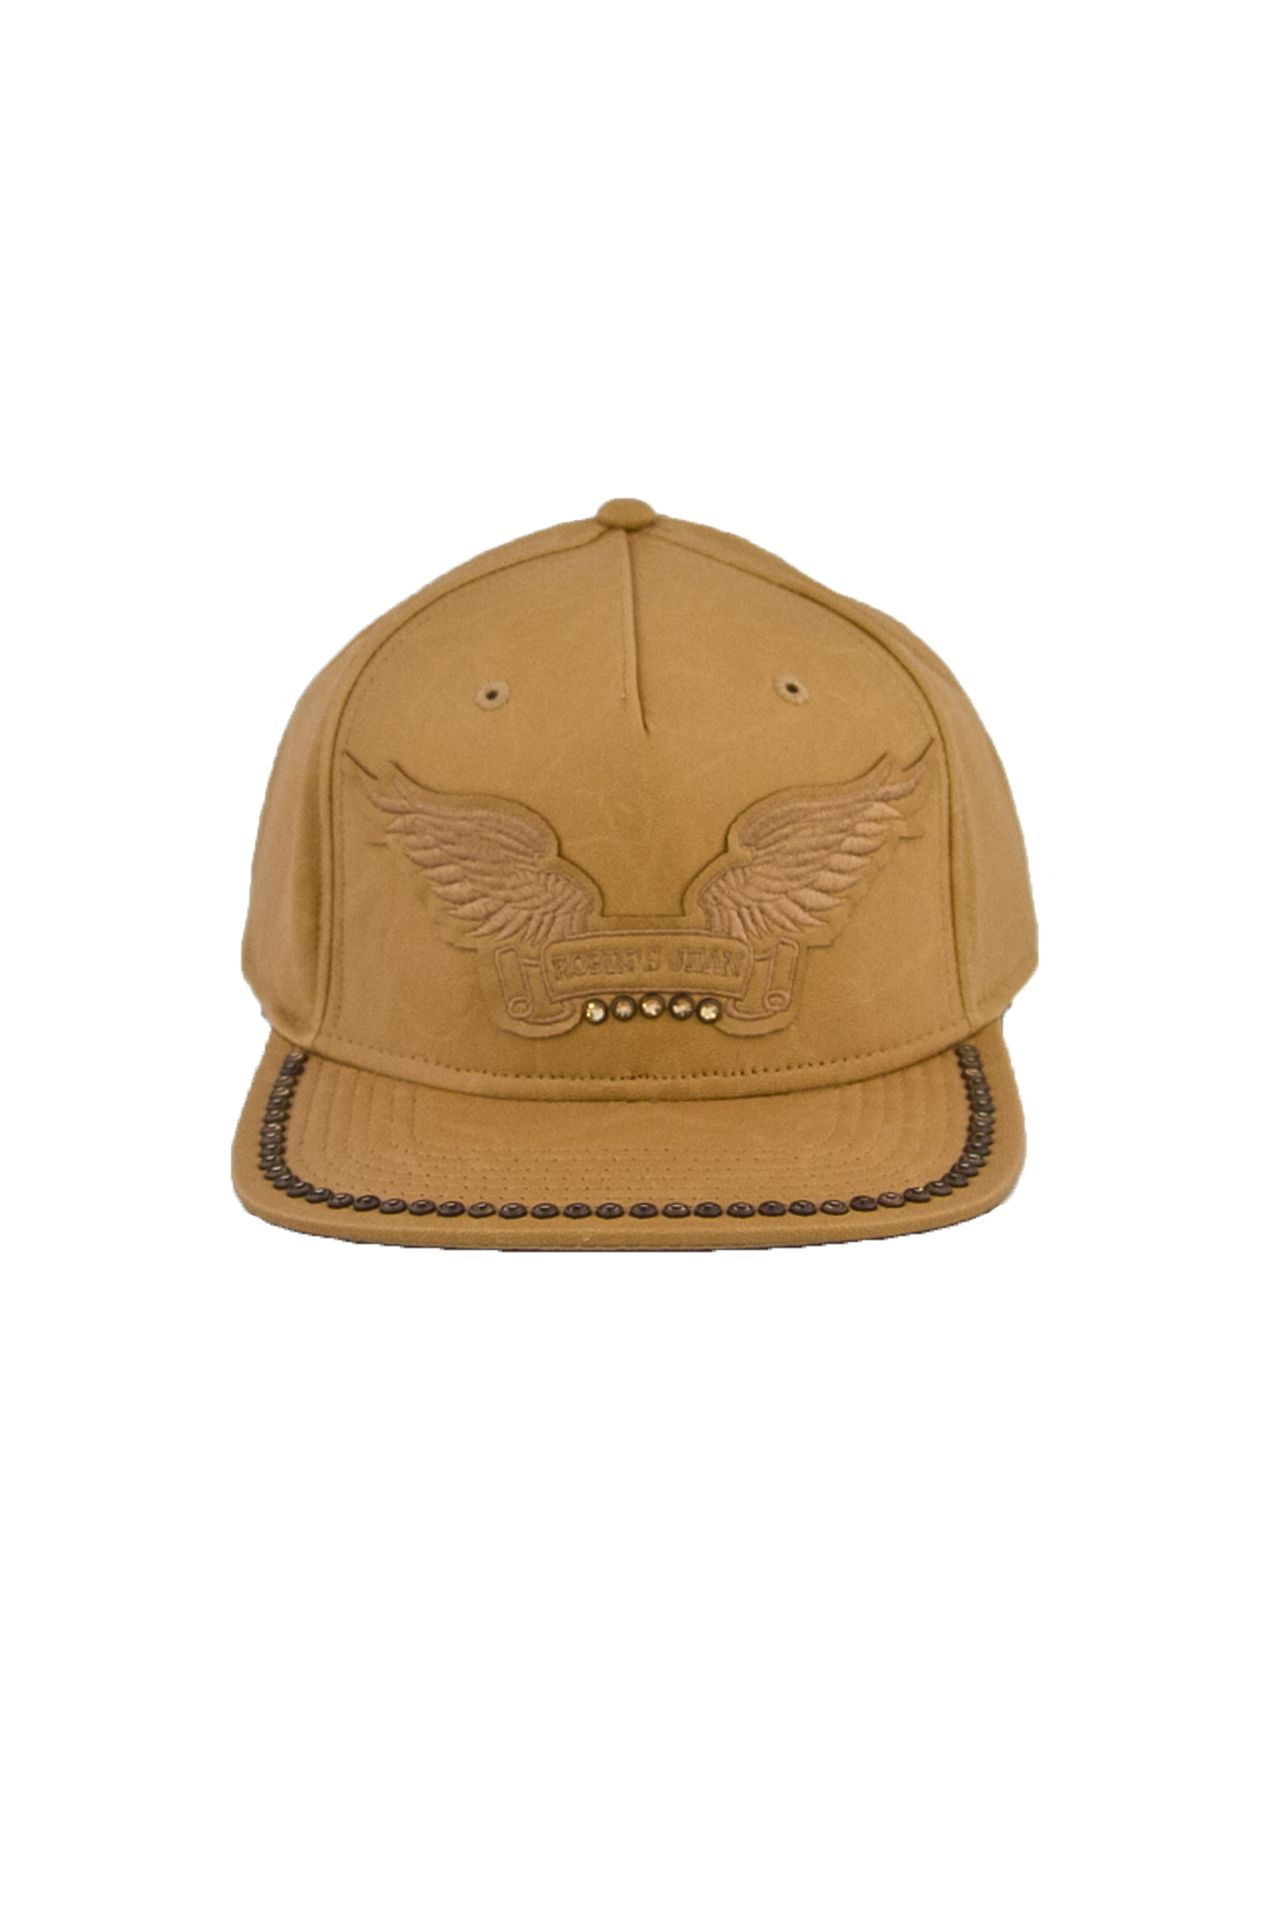 TAN LEATHER LOOK CAP CRYSTALS